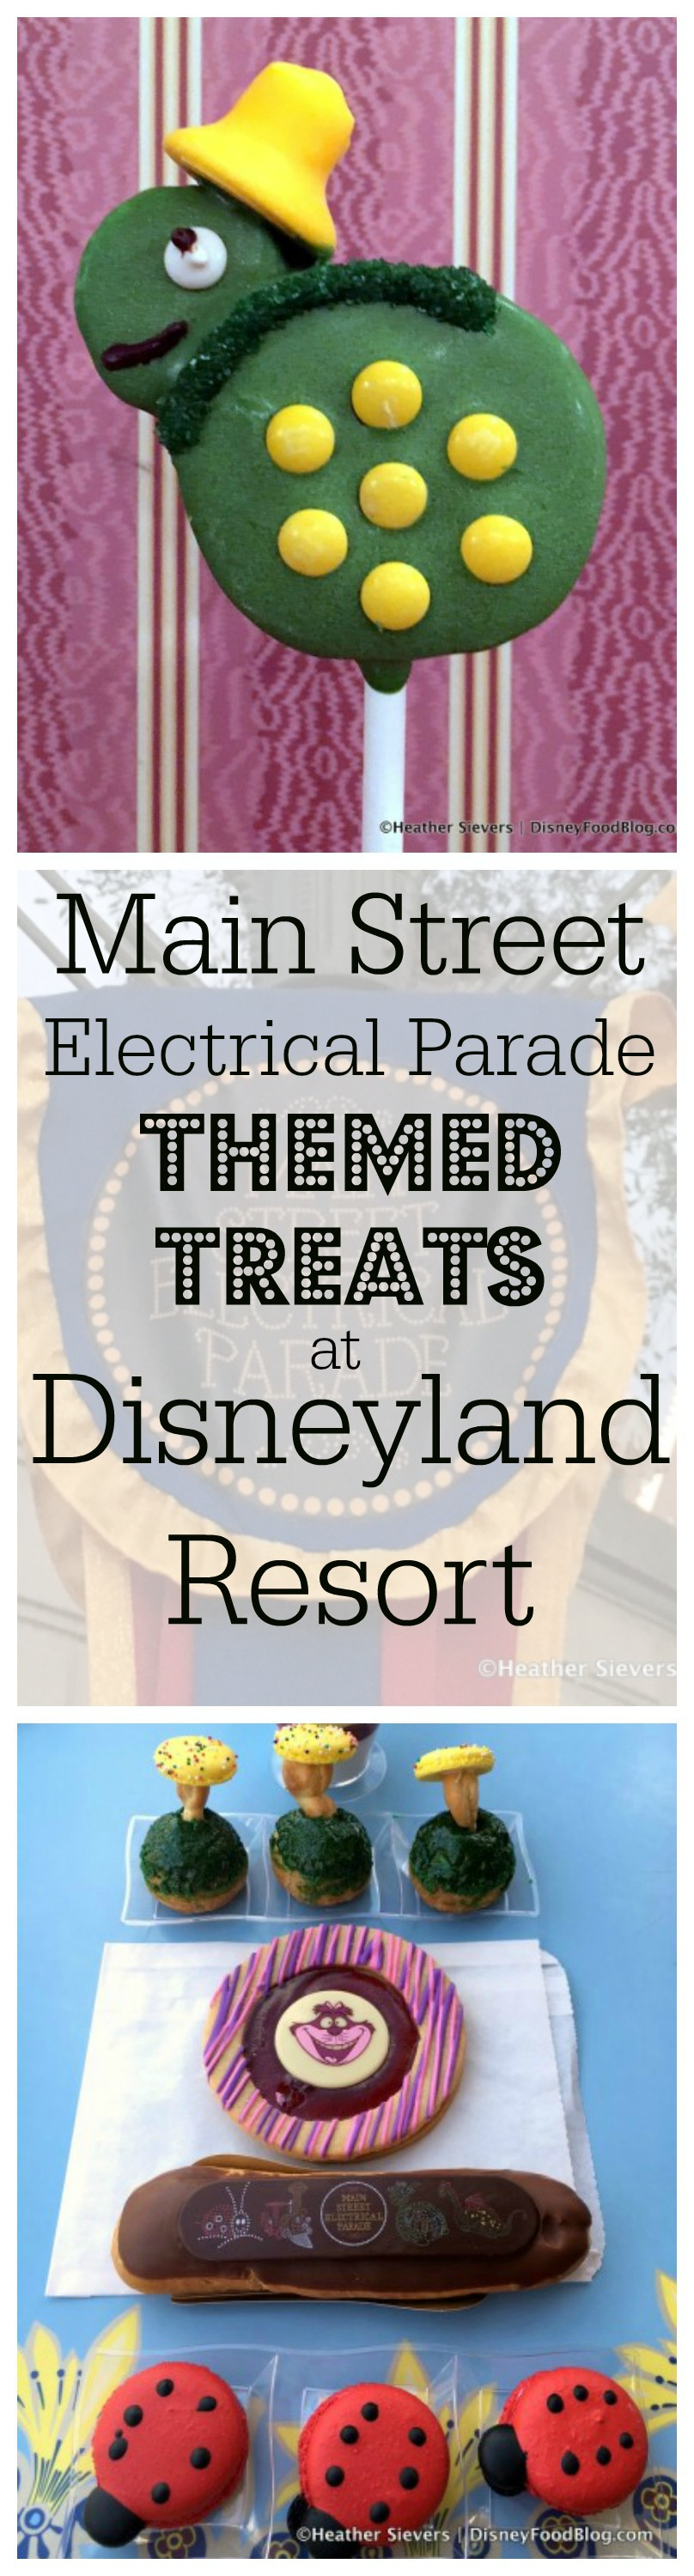 Main Street Electrical Parade-Themed Treats at Disneyland Resort!